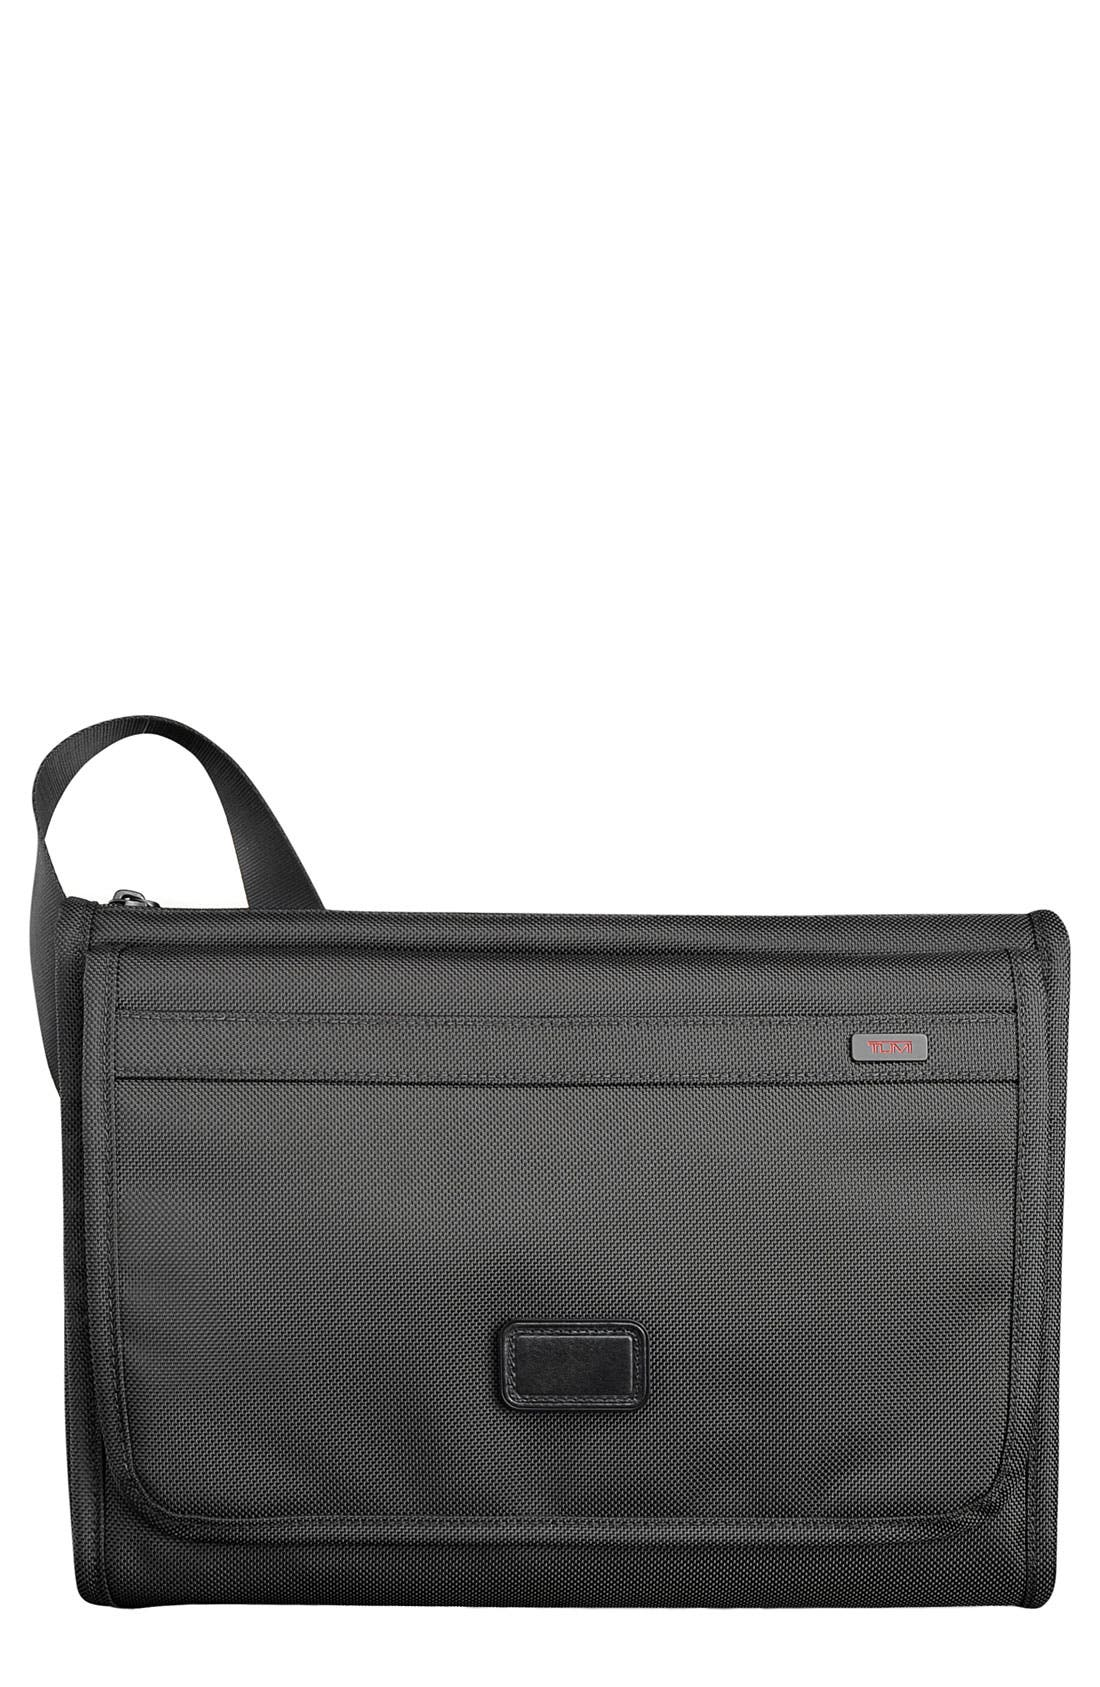 Alternate Image 1 Selected - Tumi 'Alpha' Flap Zip Crossbody Bag